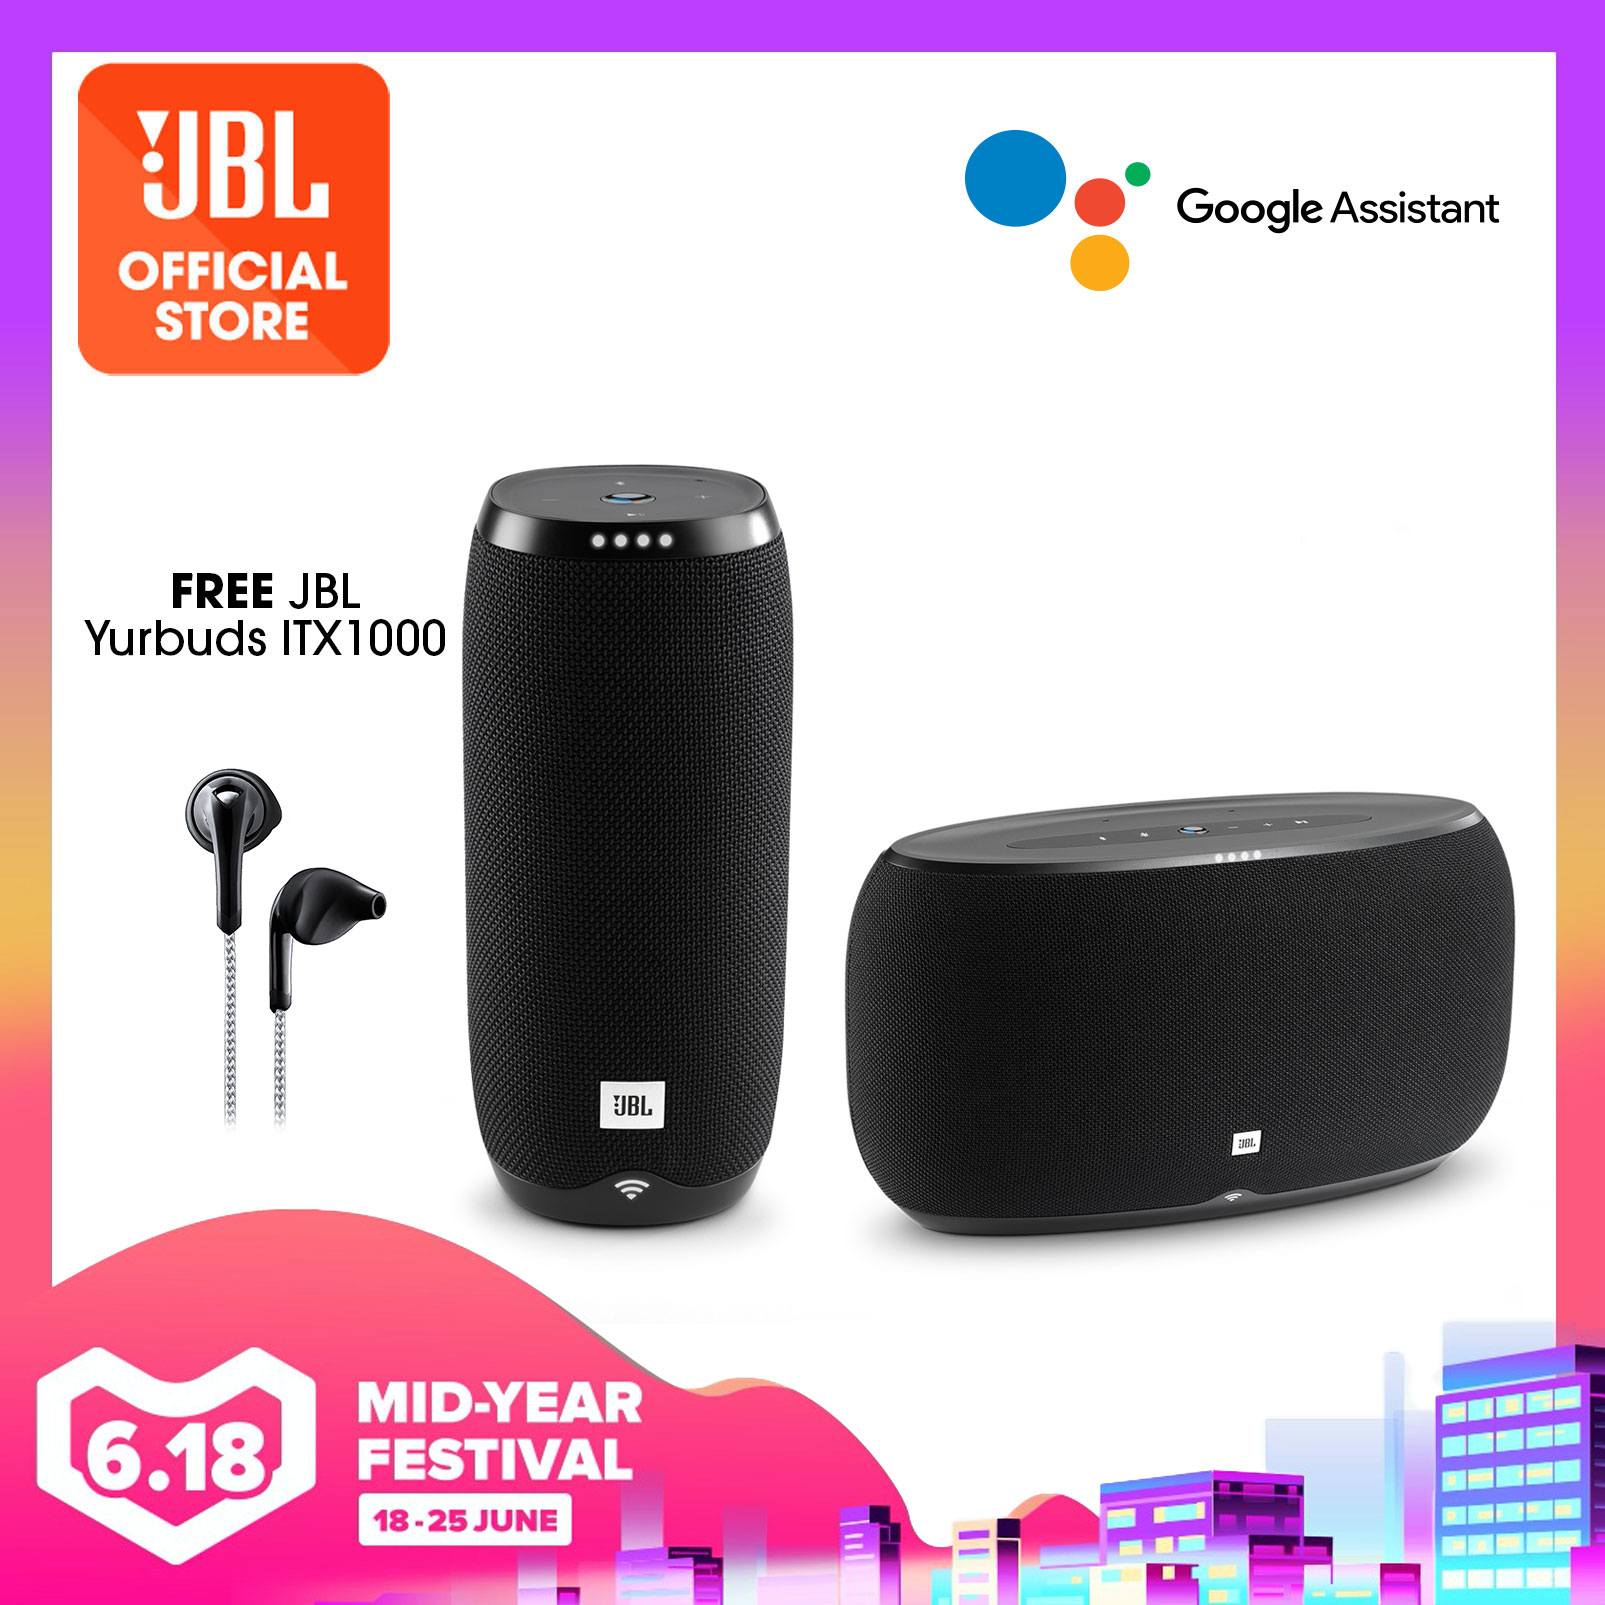 JBL Link 500 Voice-activated speaker + Link 20 Voice-activated portable speaker (bundle) +Free Yurbuds ITX1000 | Why Not Deals